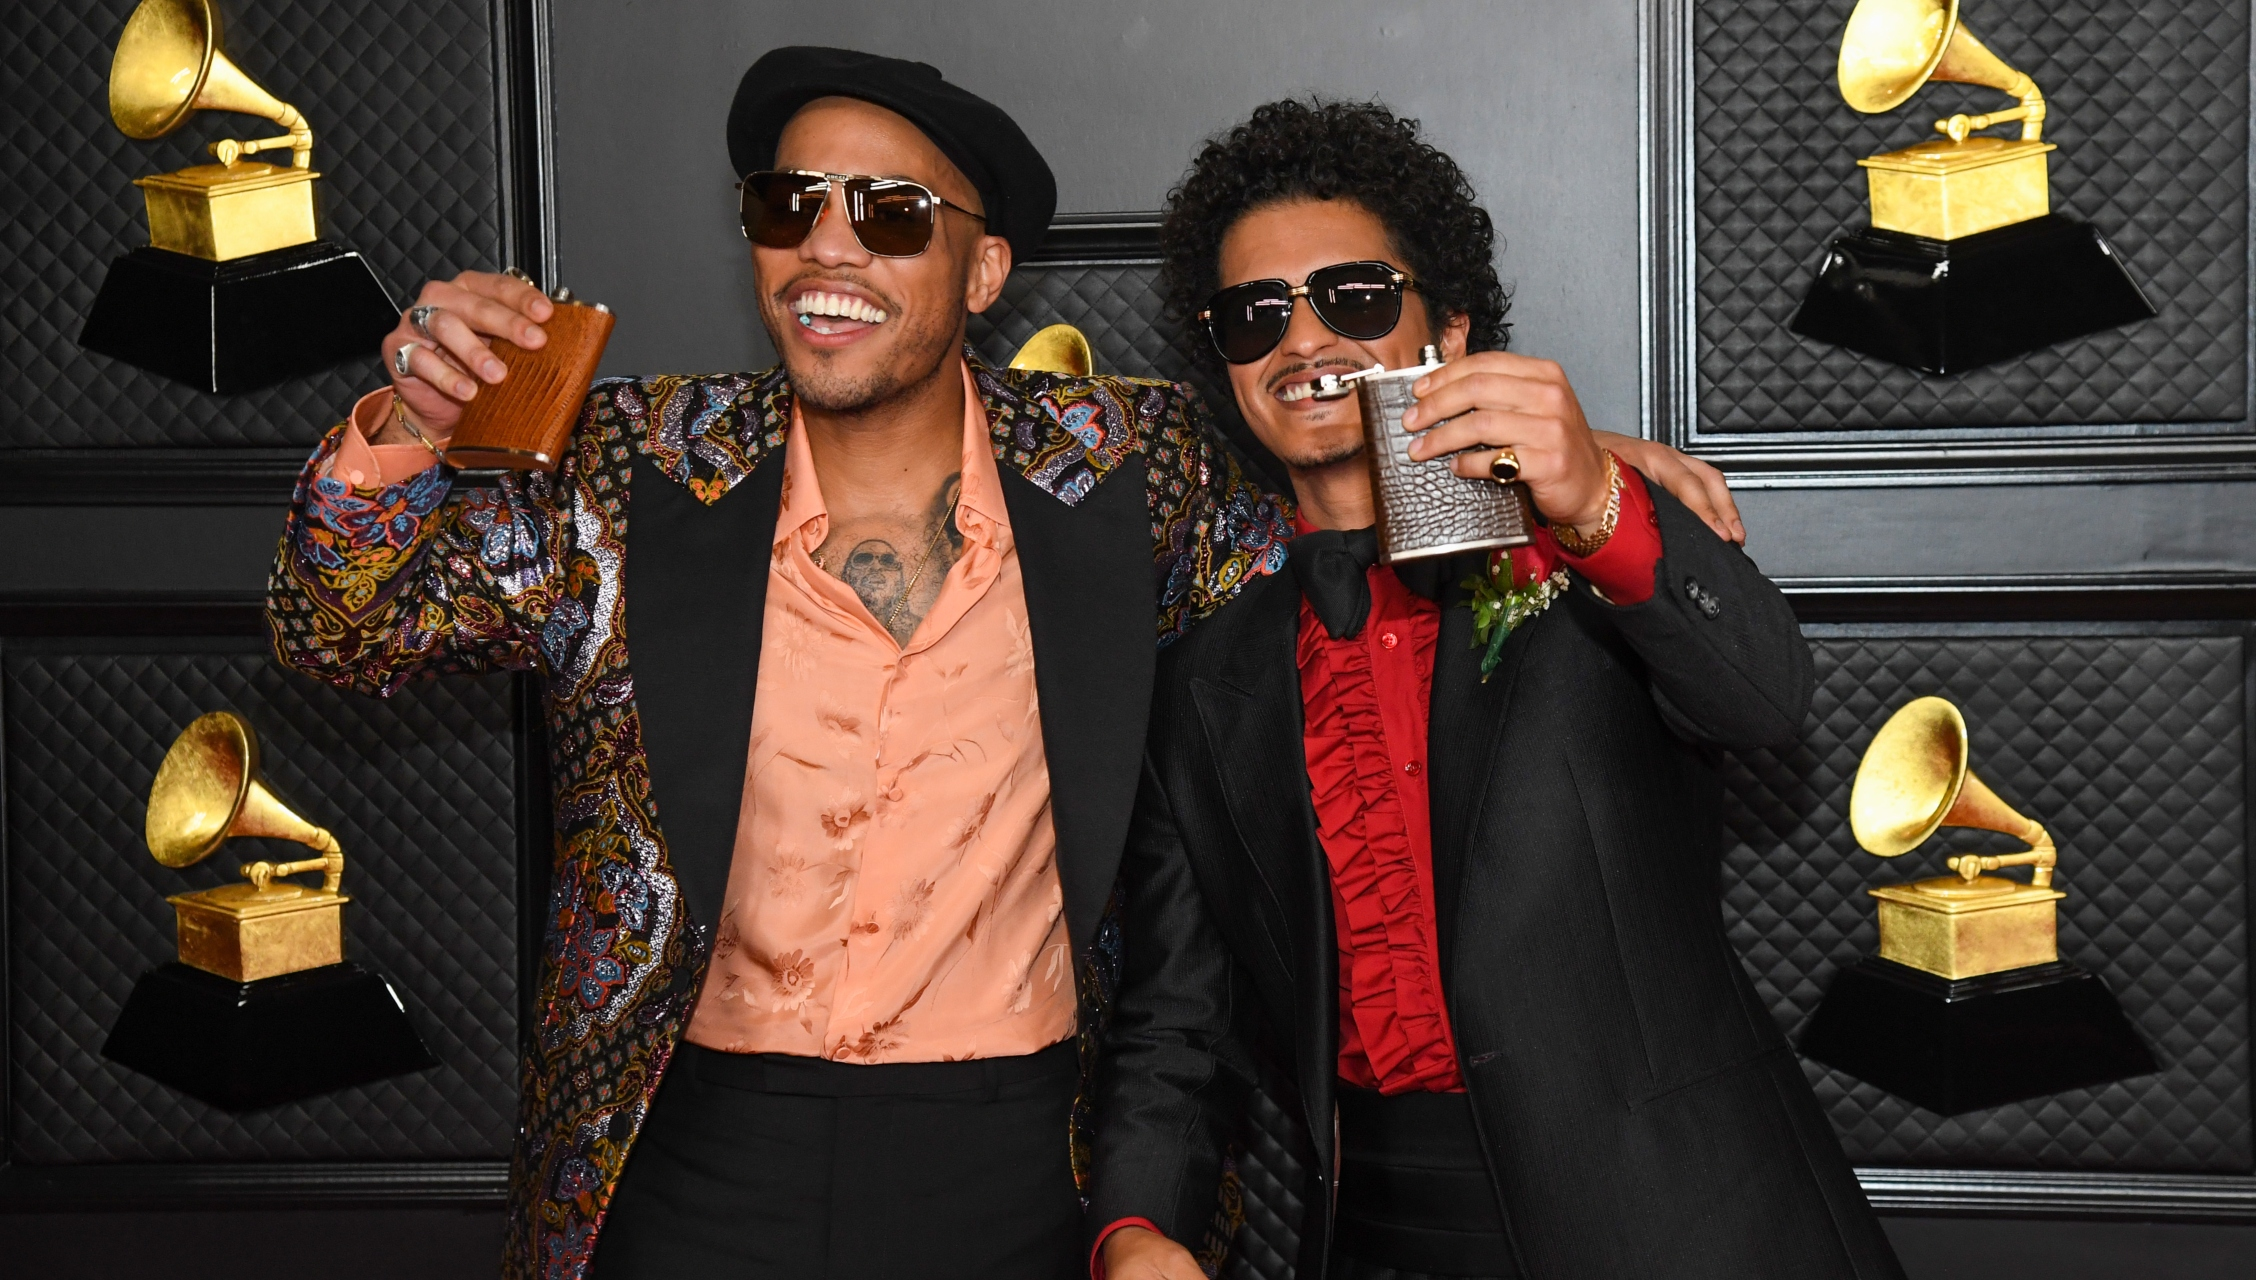 """Watch Bruno Mars and Anderson .Paak Perform """"Leave the Door Open"""" as Silk Sonic at 2021 Grammys"""